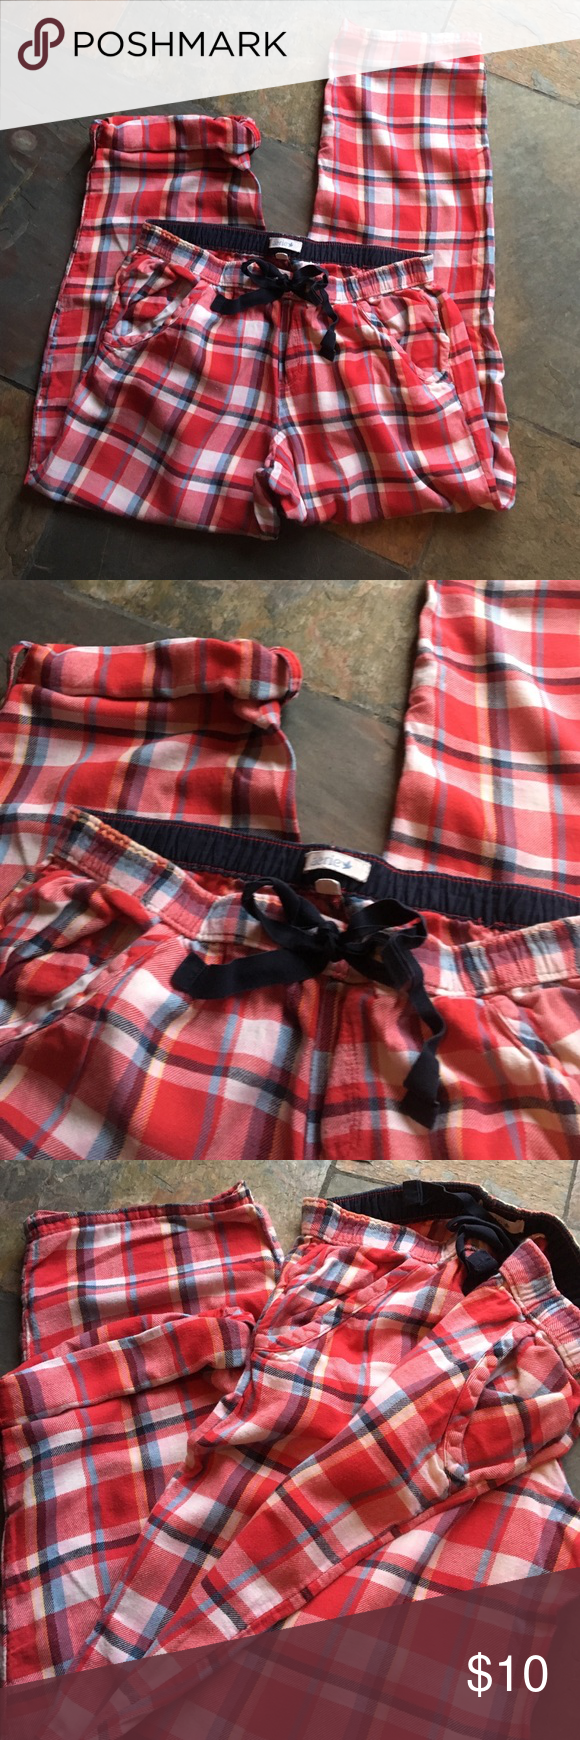 Red flannel pajama pants  Aerie flannel pajama pants  My Posh Picks  Pinterest  Flannel